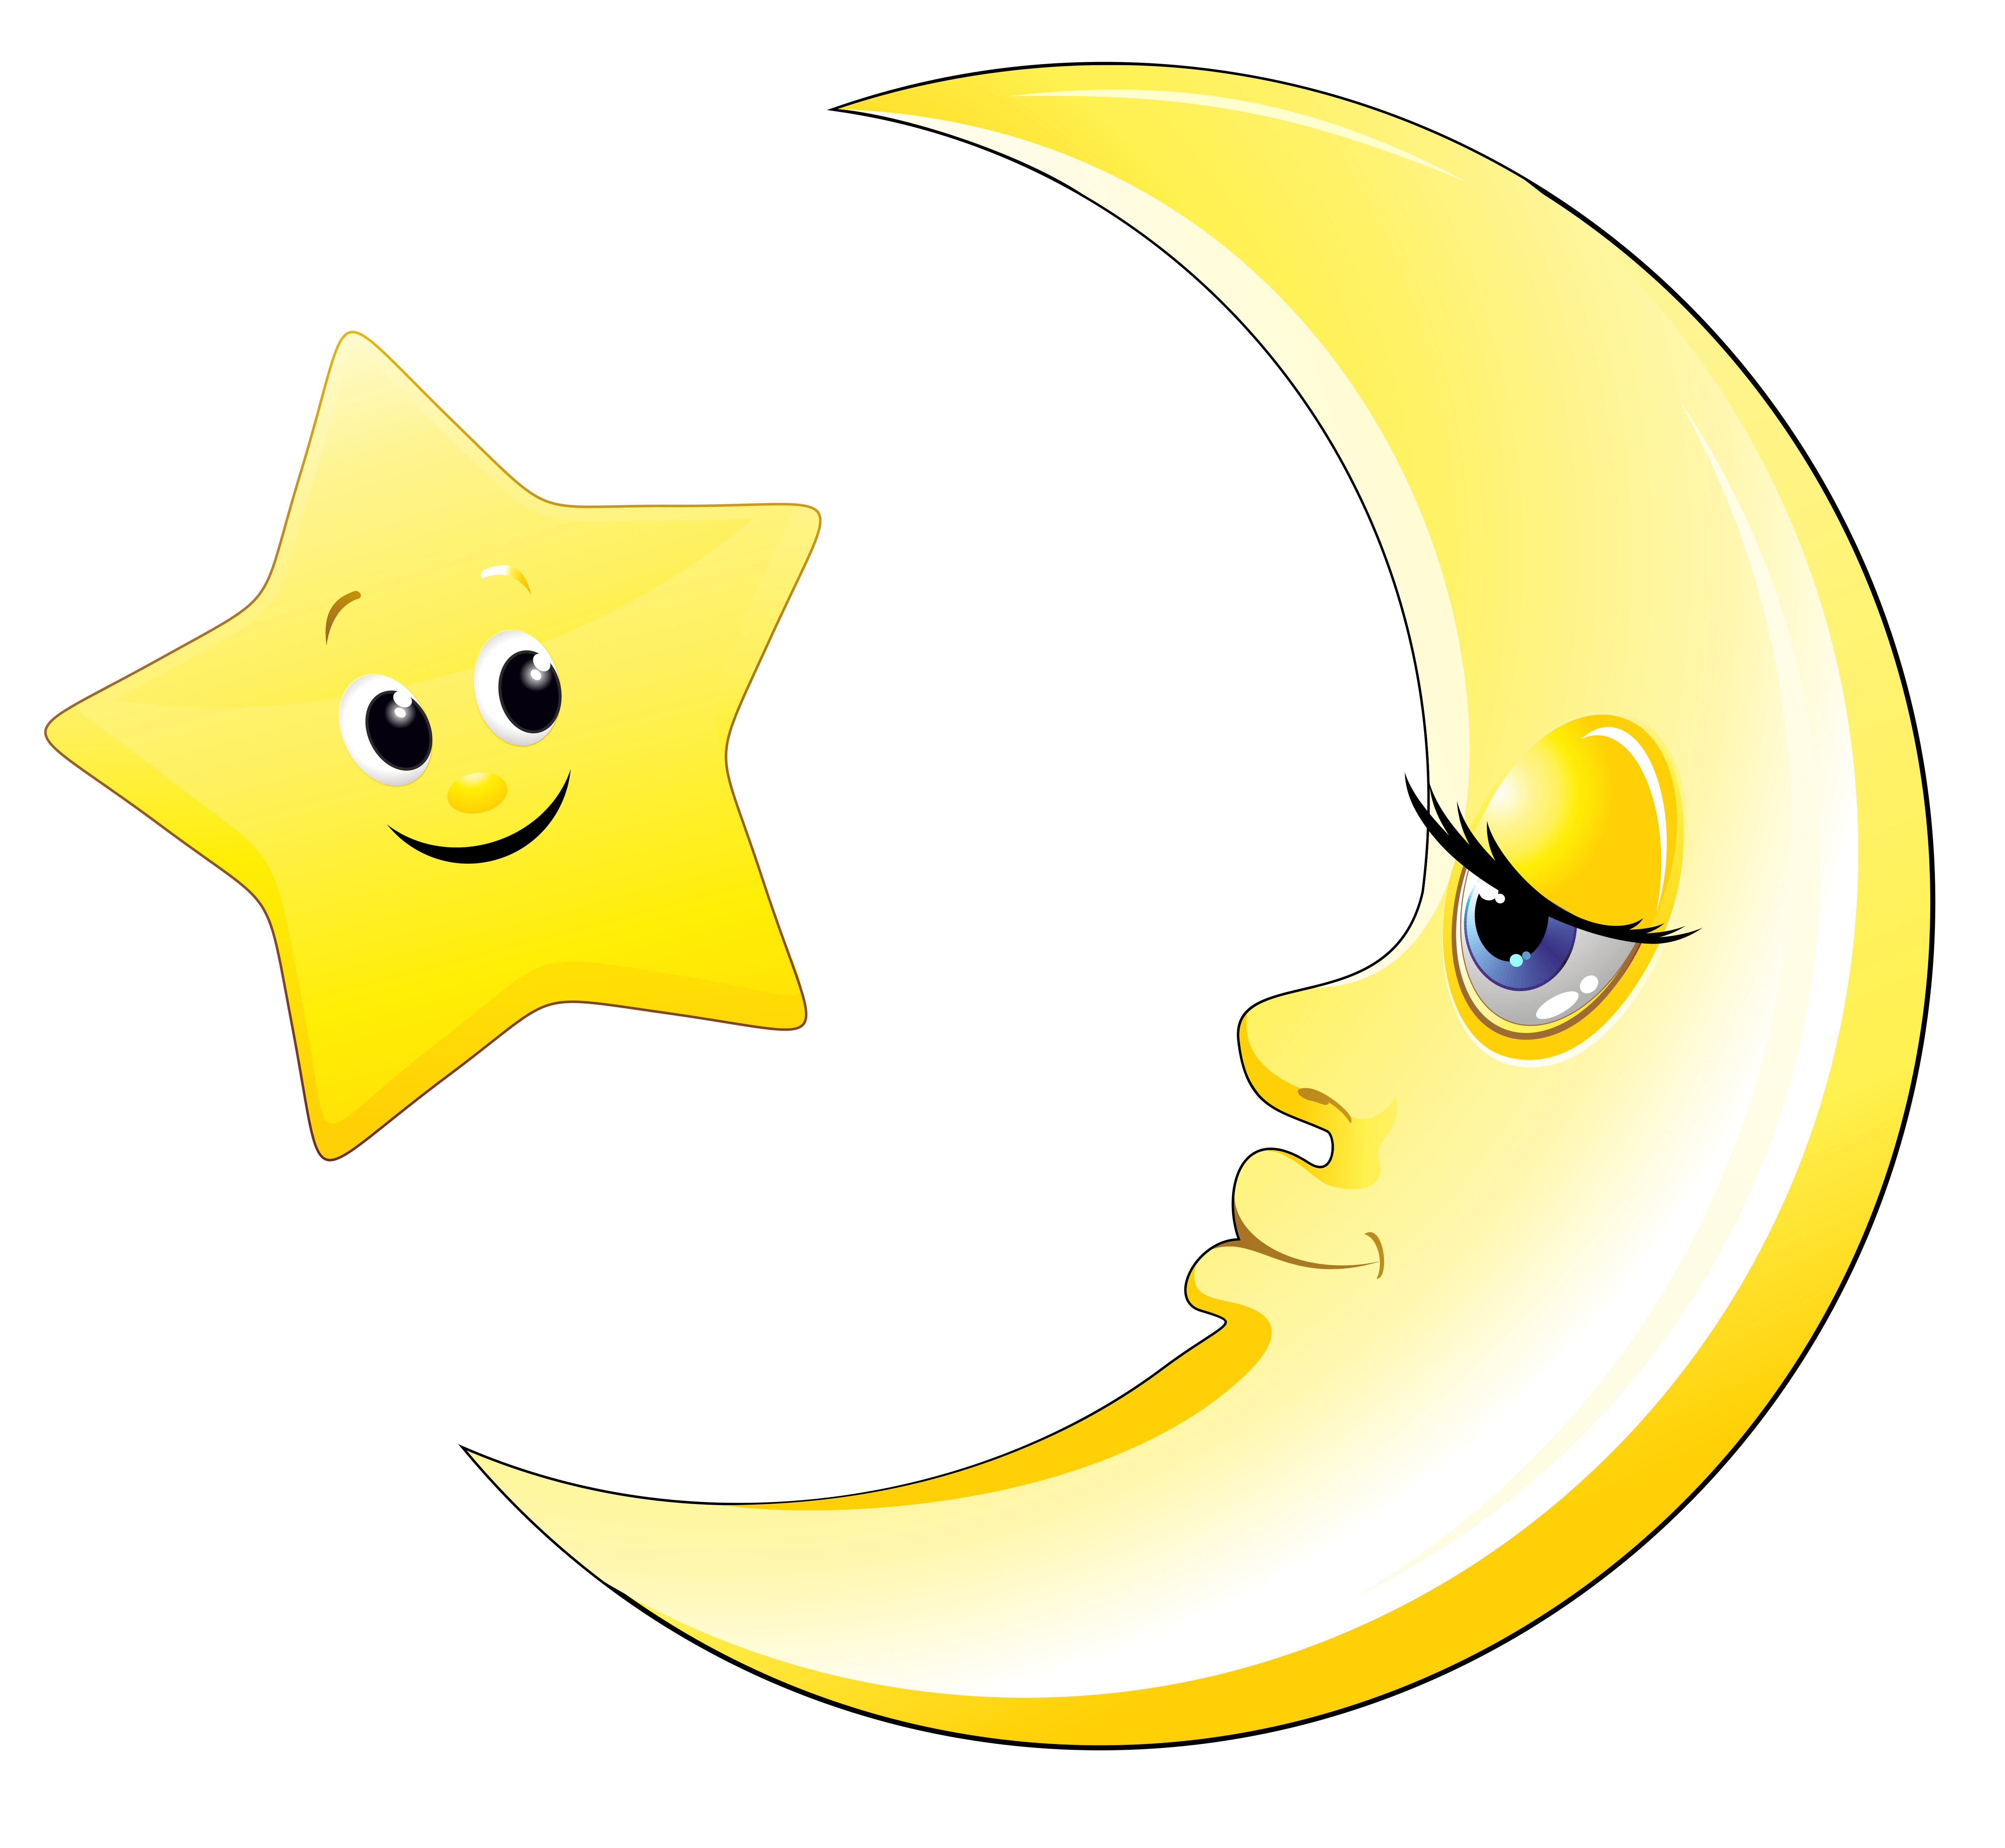 moon and stars clipart cute